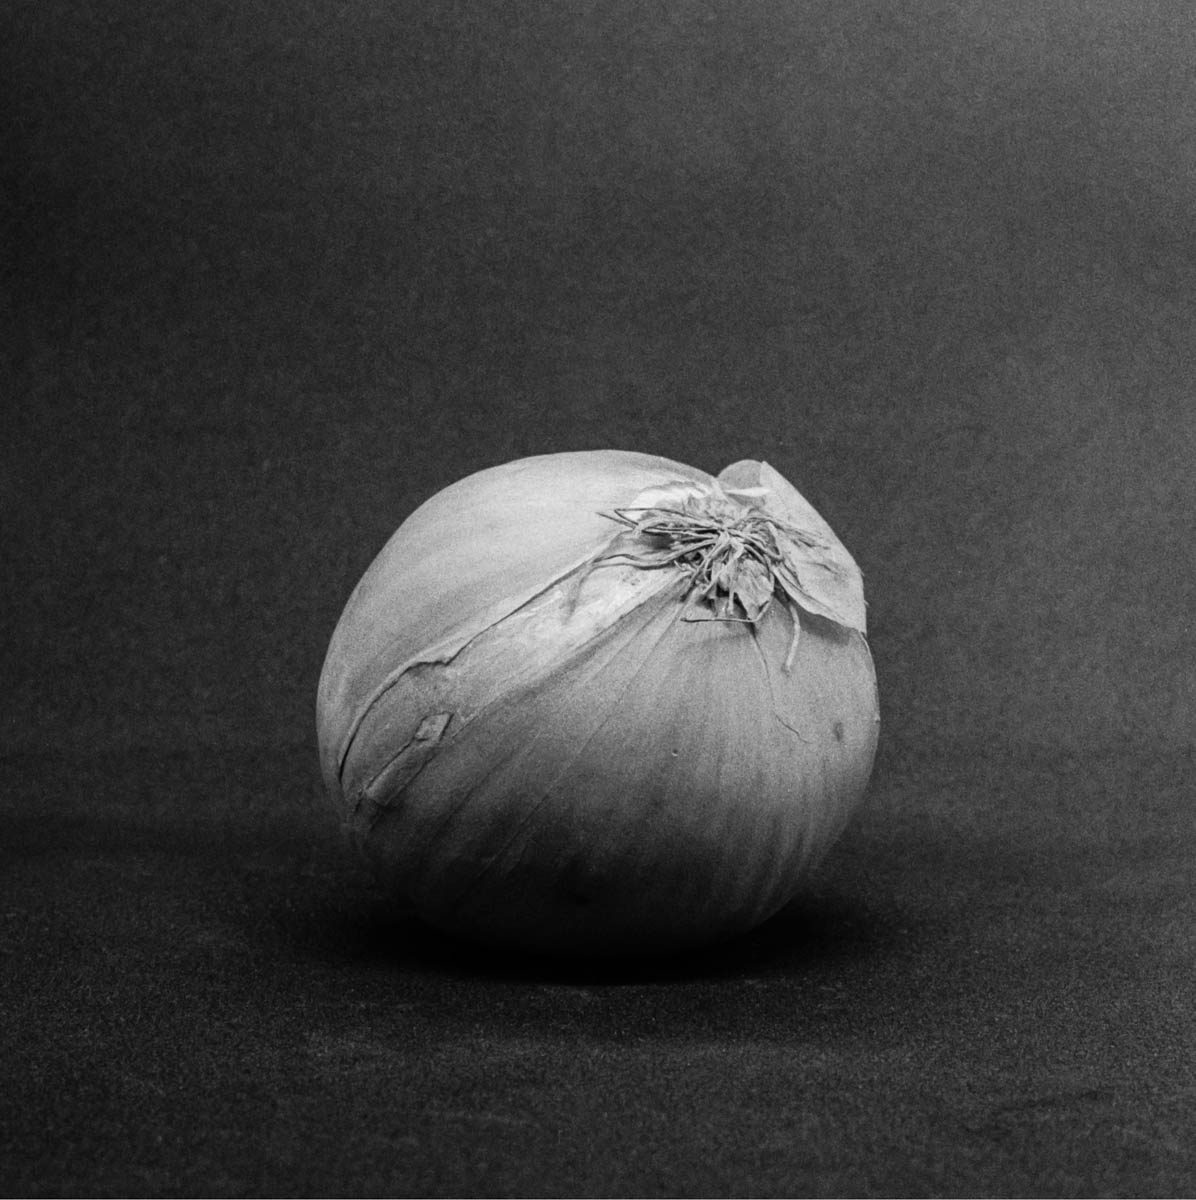 Onion #1 - ILFORD HP5 PLUS, Minolta SRT 101b, MD Rokkor 50mm f/1.7 - Nigel Fishwick